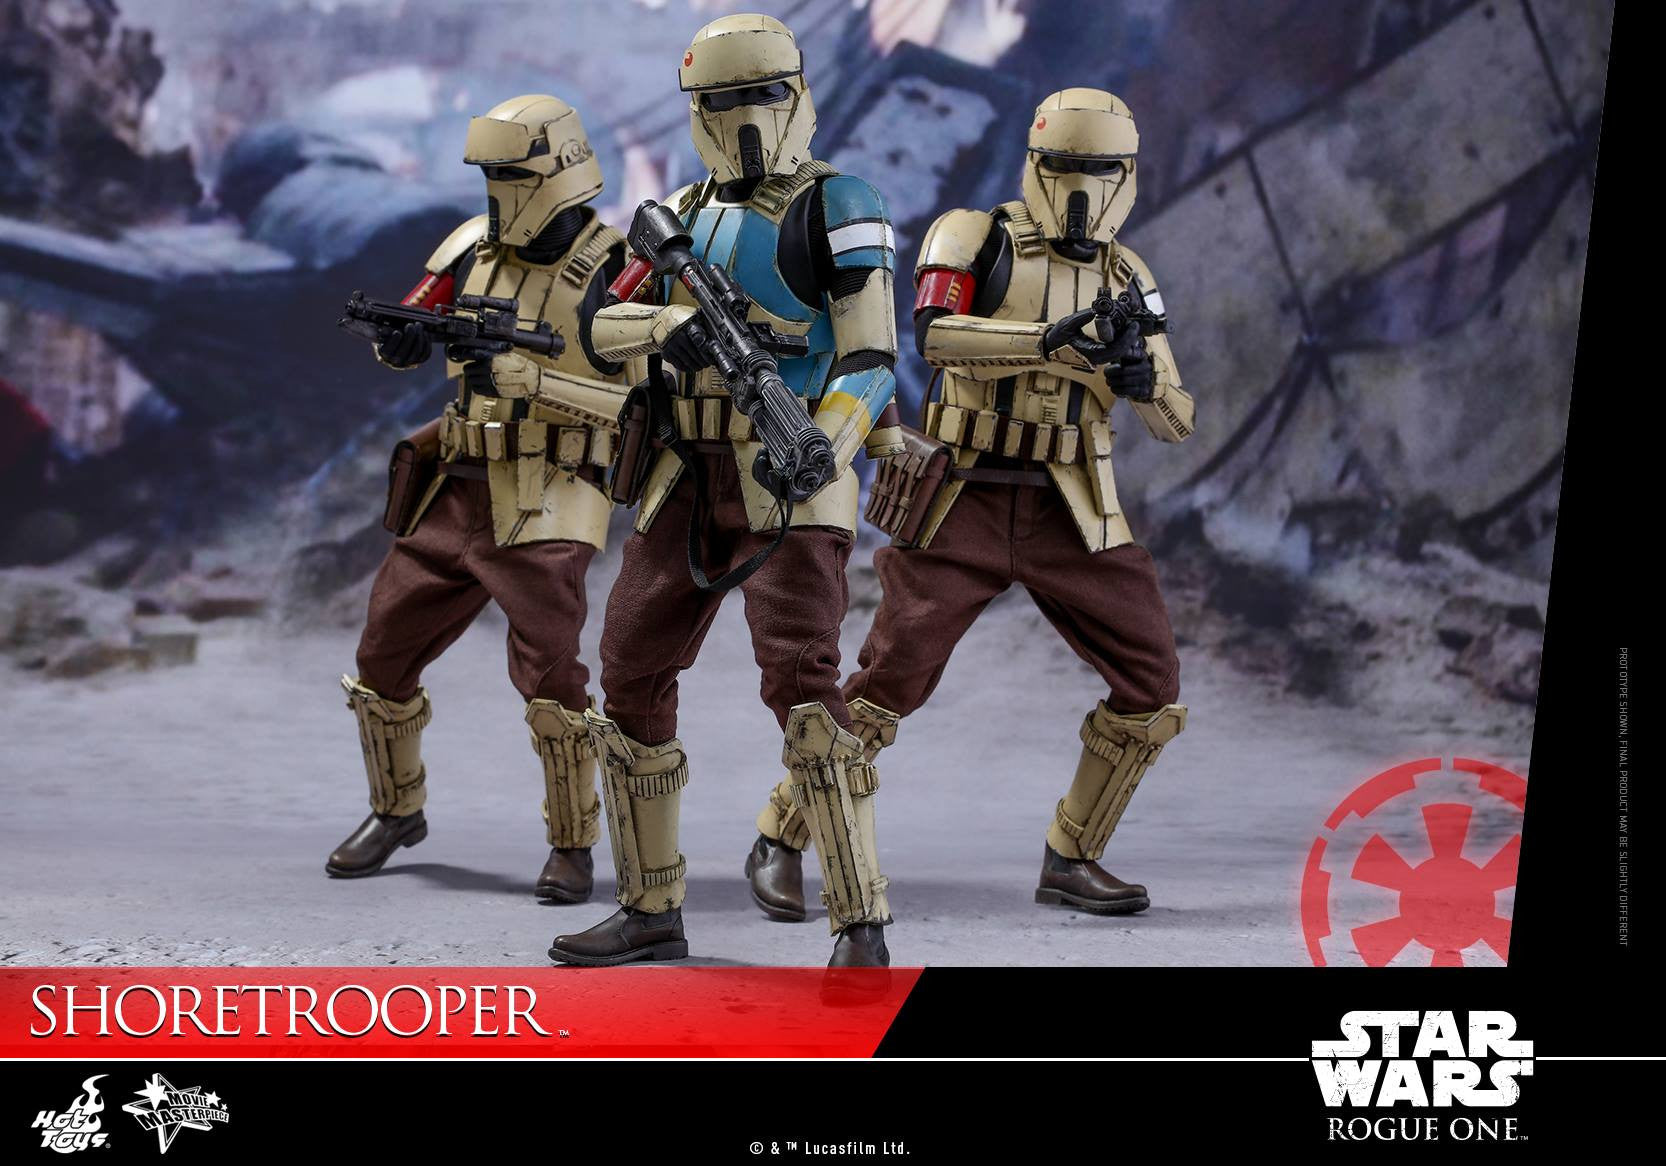 Hot Toys - MMS389 - Rogue One: A Star Wars Story - Shoretrooper - Marvelous Toys - 2